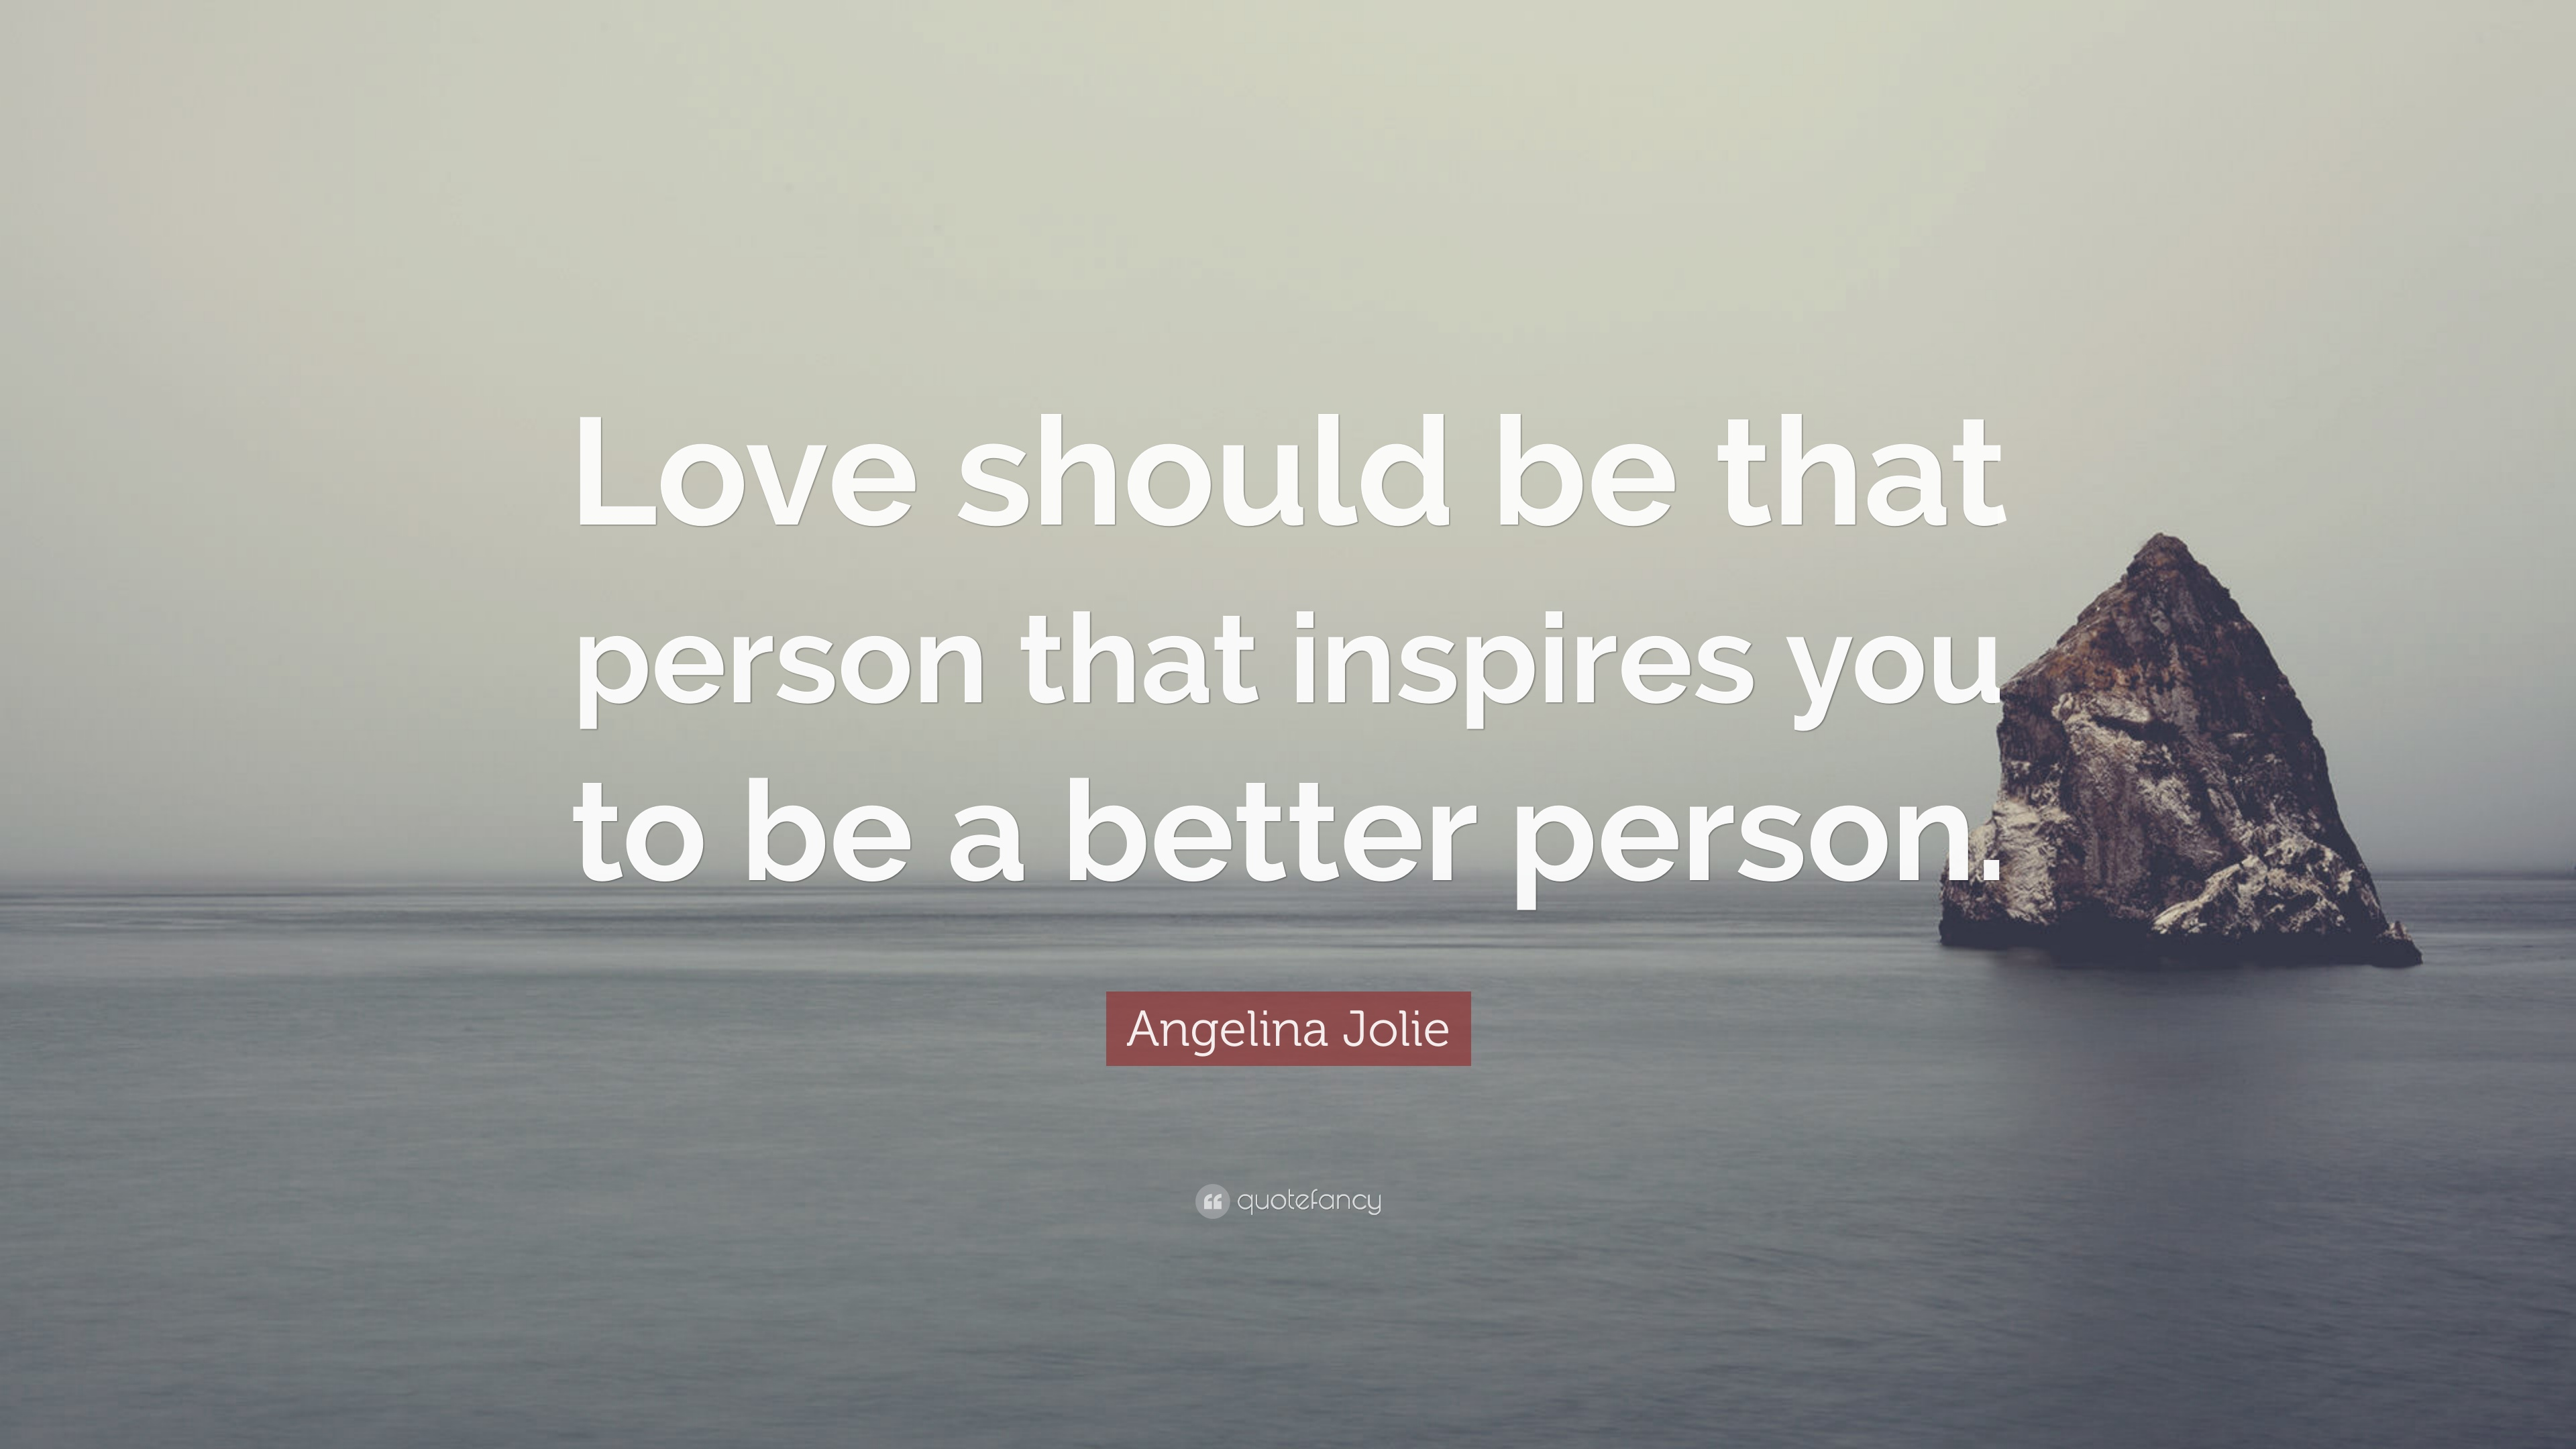 angelina jolie quote love should be that person that inspires angelina jolie quote love should be that person that inspires you to be a